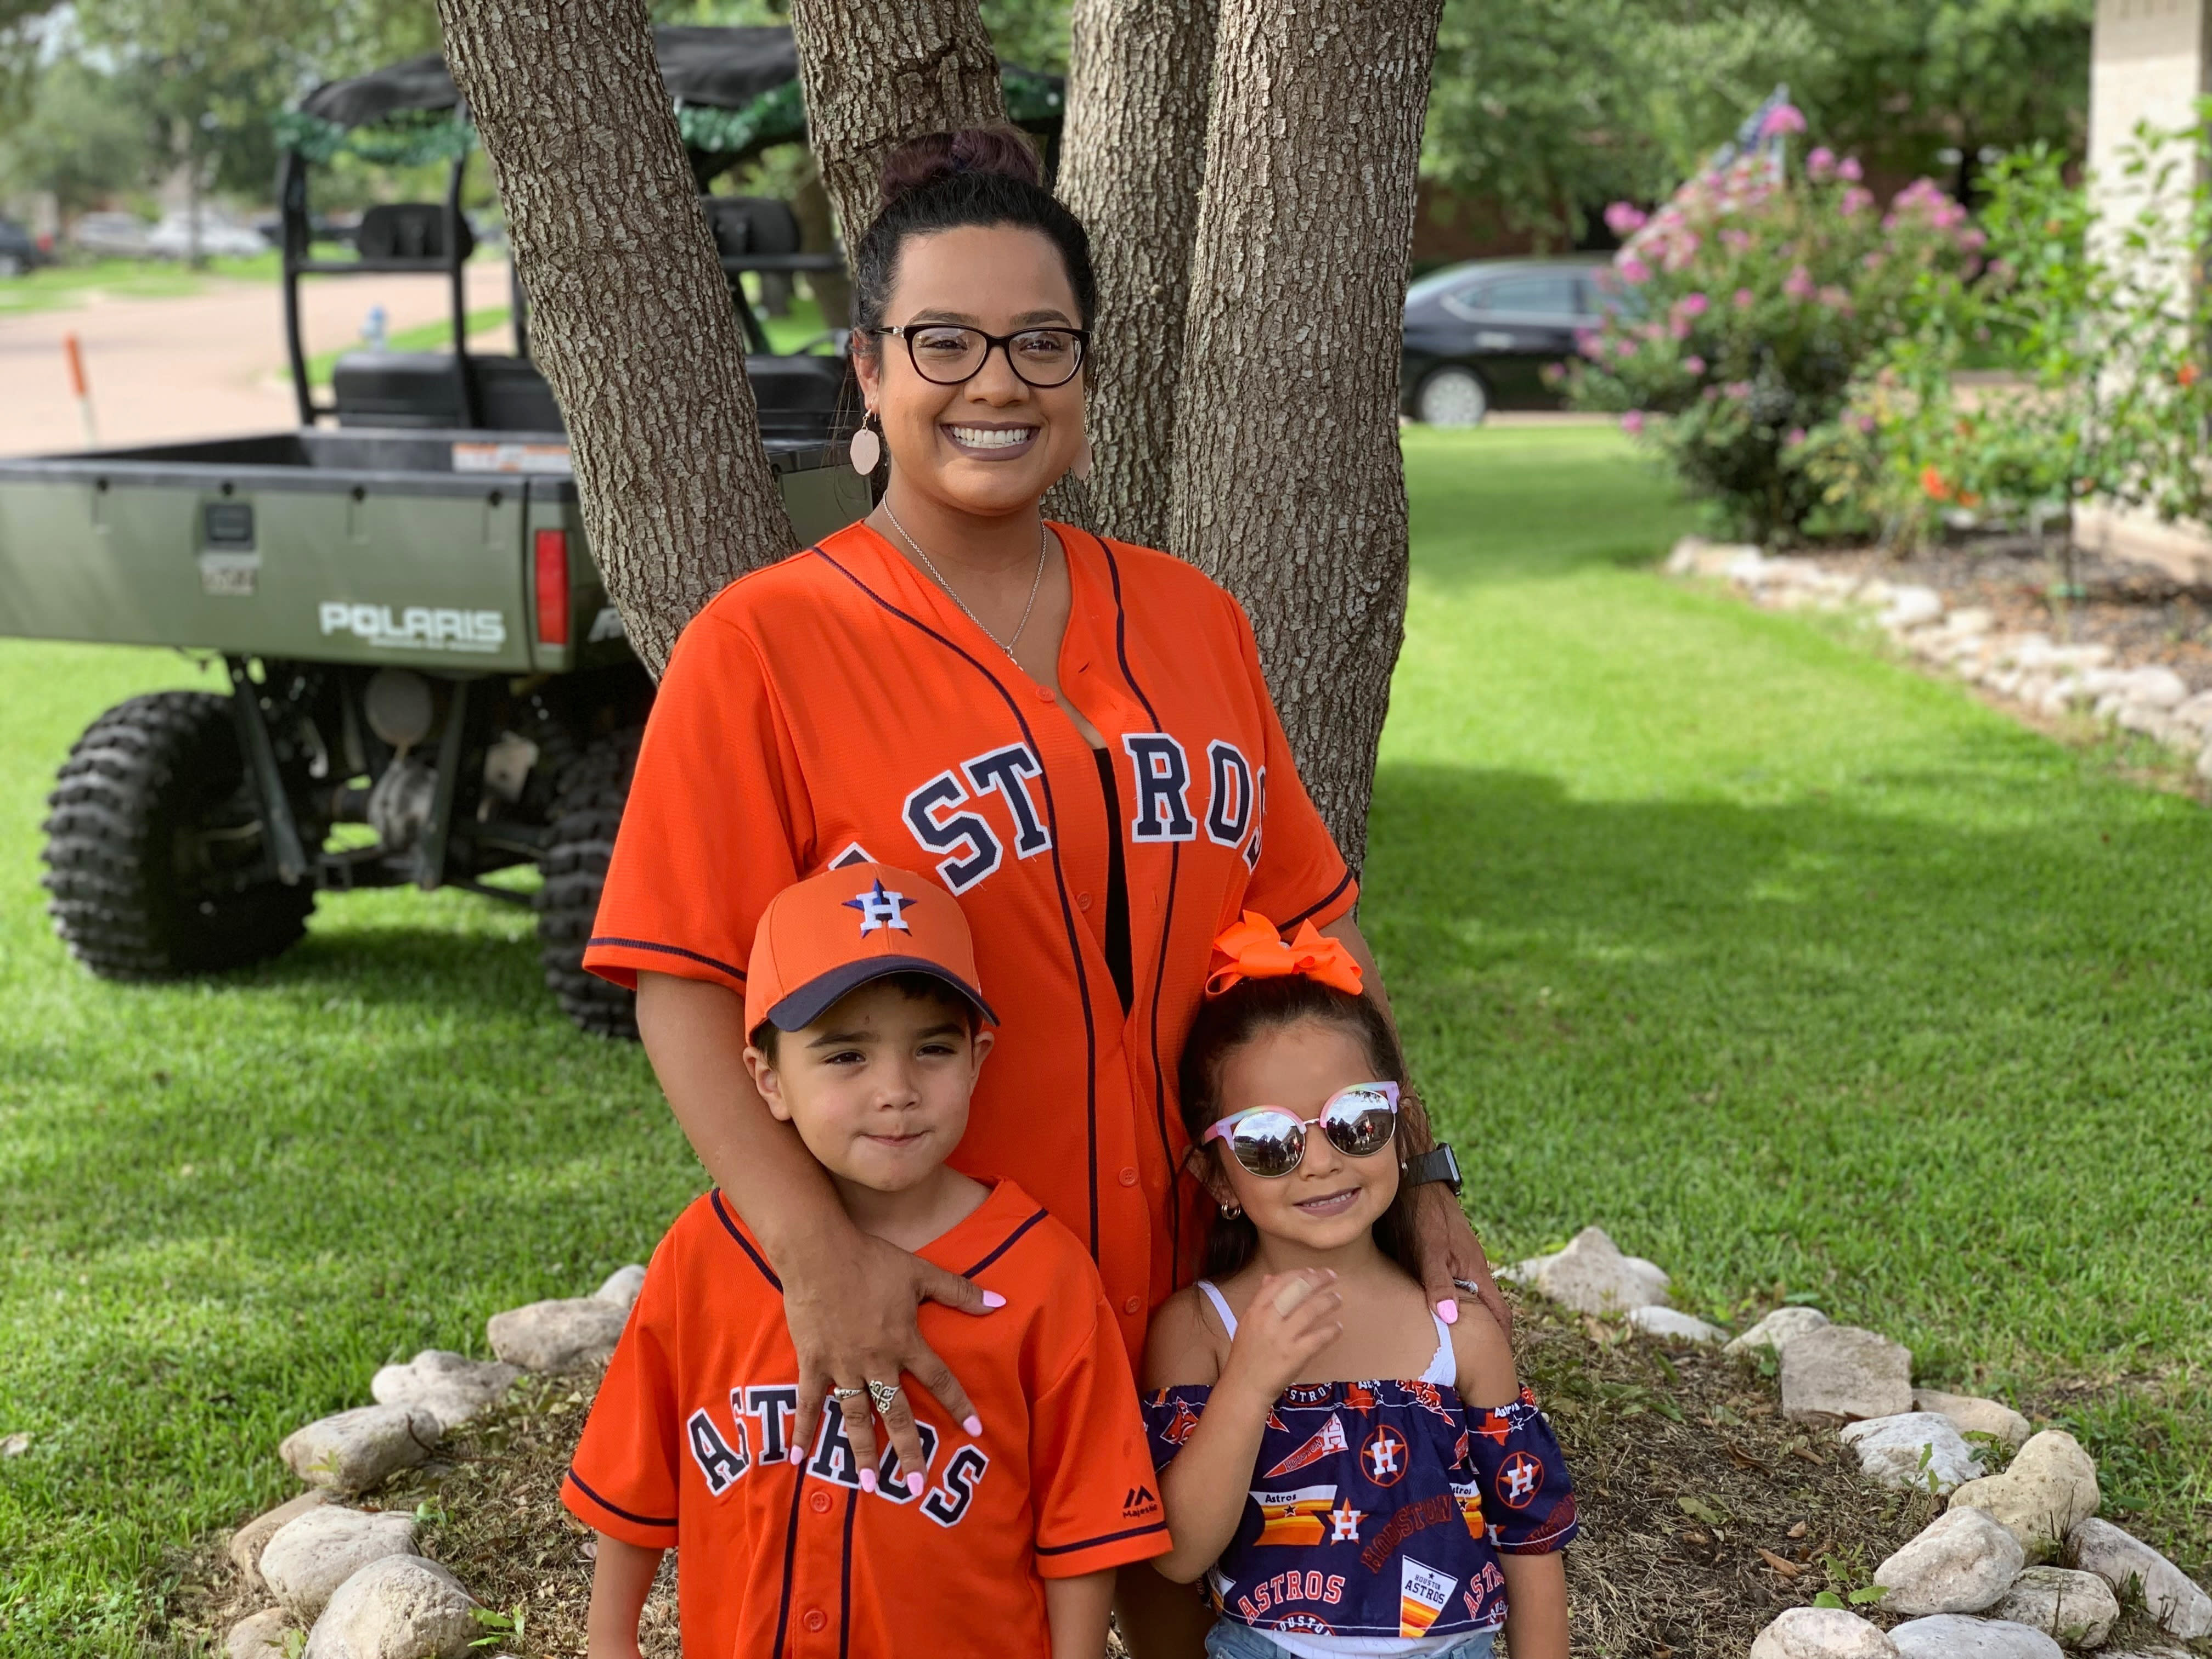 This undated photo provided by Maria Castillo shows Castillo, center, with her son Josiah McIntyre, left, and daughter Alayna Flores. A Houston-area official said Monday, Sept. 28, 2020, it will take 60 days to ensure a city drinking water system is purged of a deadly, microscopic parasite that doctors believed killed Josiah McIntyre and that led to warnings for others not to drink tap water. (Courtesy of Maria Castillo via AP)